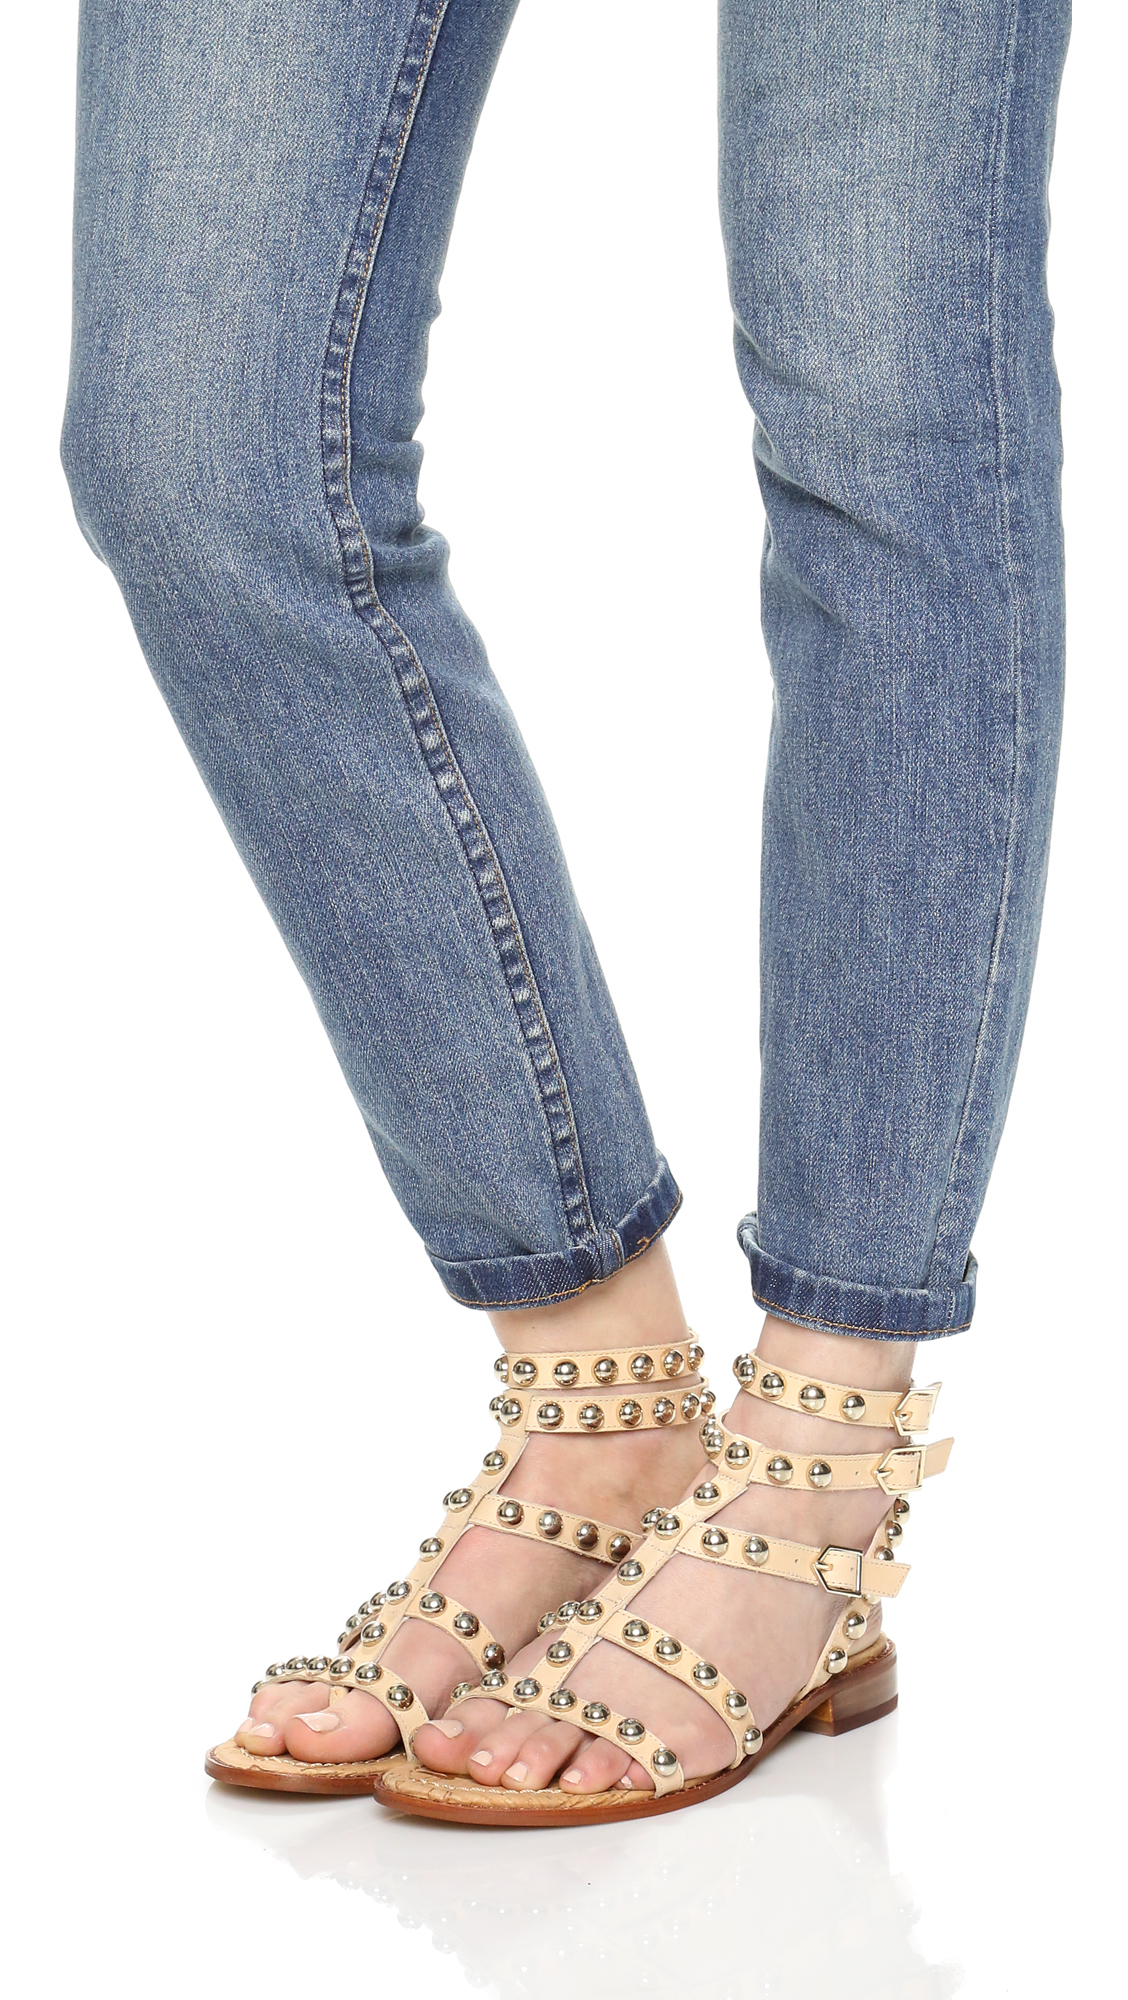 81d8faa936c6 Gallery. Previously sold at  Shopbop · Women s Gladiator Sandals ...